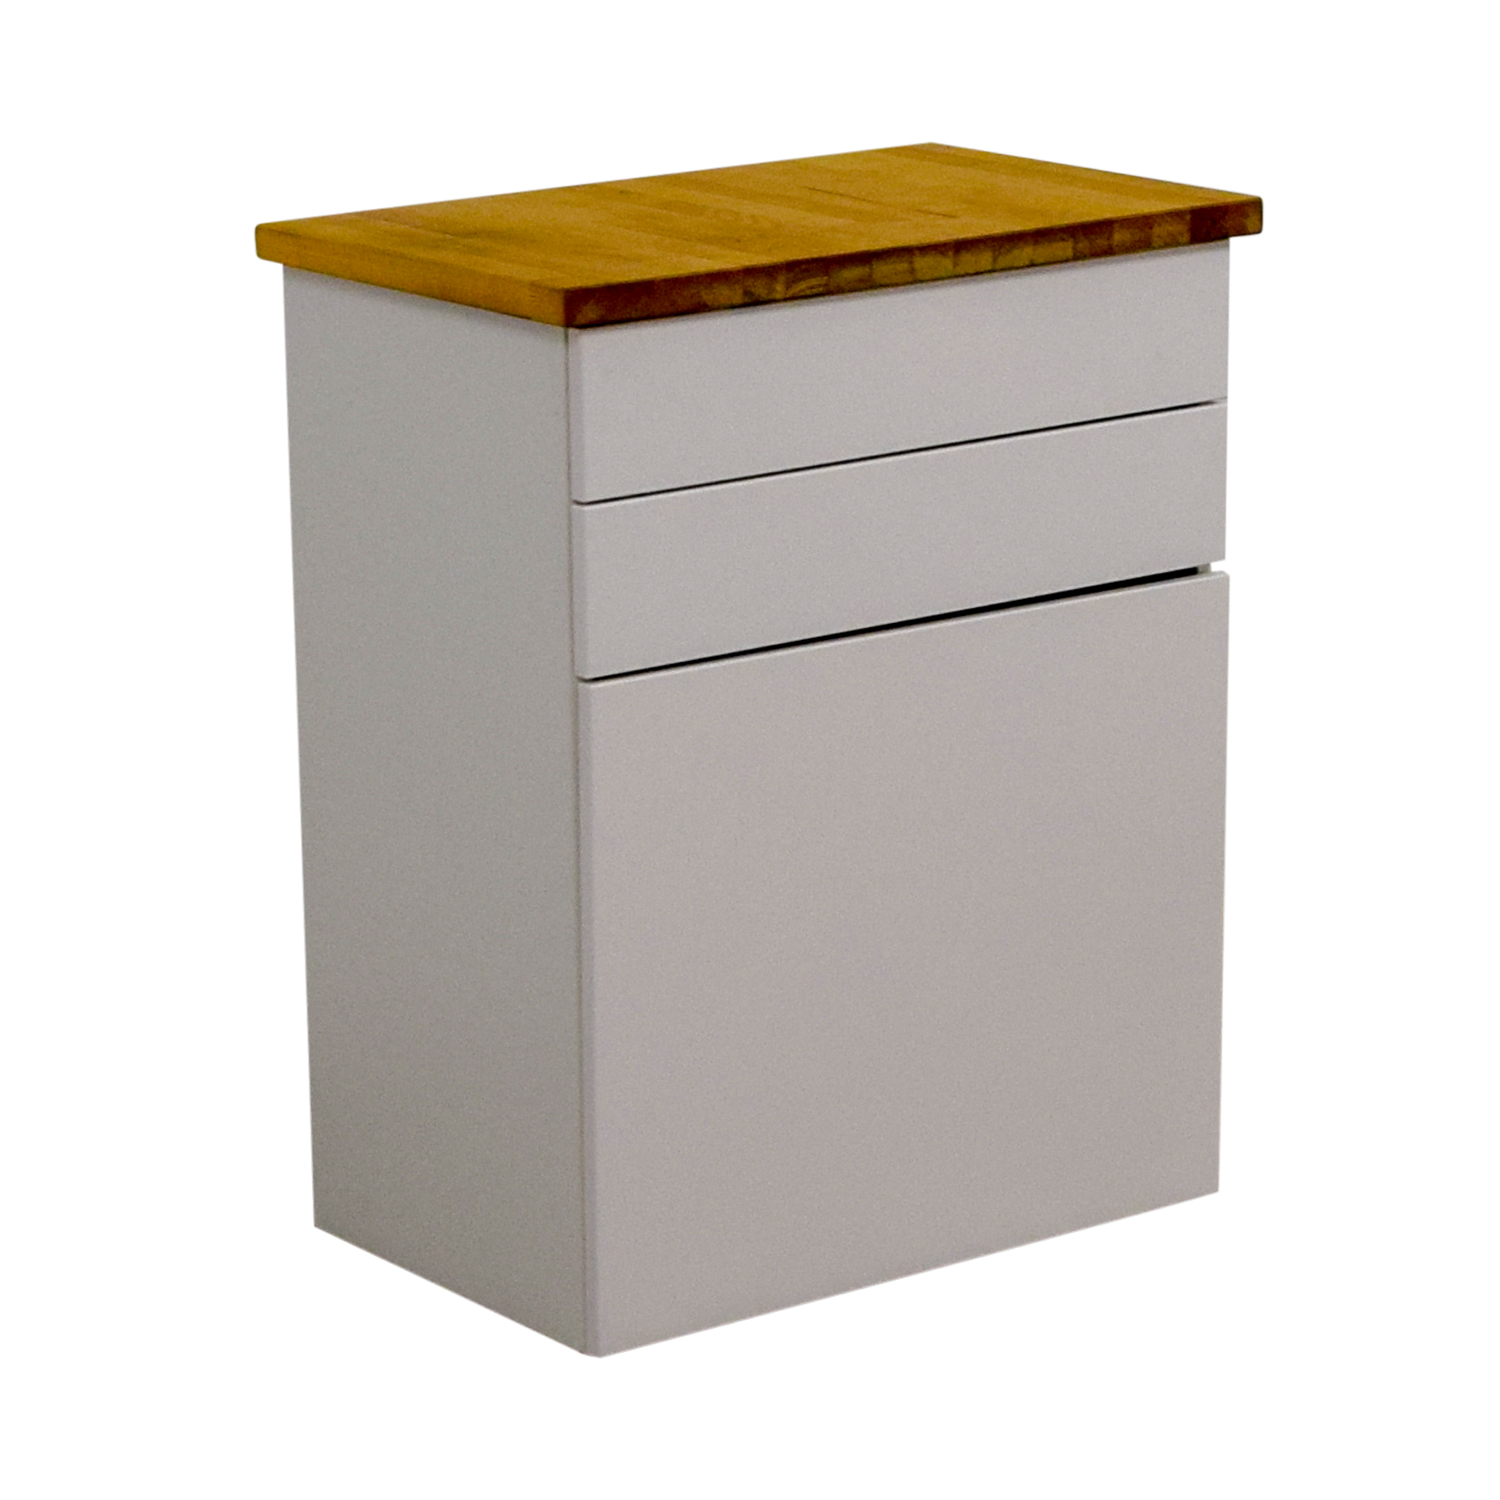 74 off ikea ikea white butcher block counter cabinet. Black Bedroom Furniture Sets. Home Design Ideas